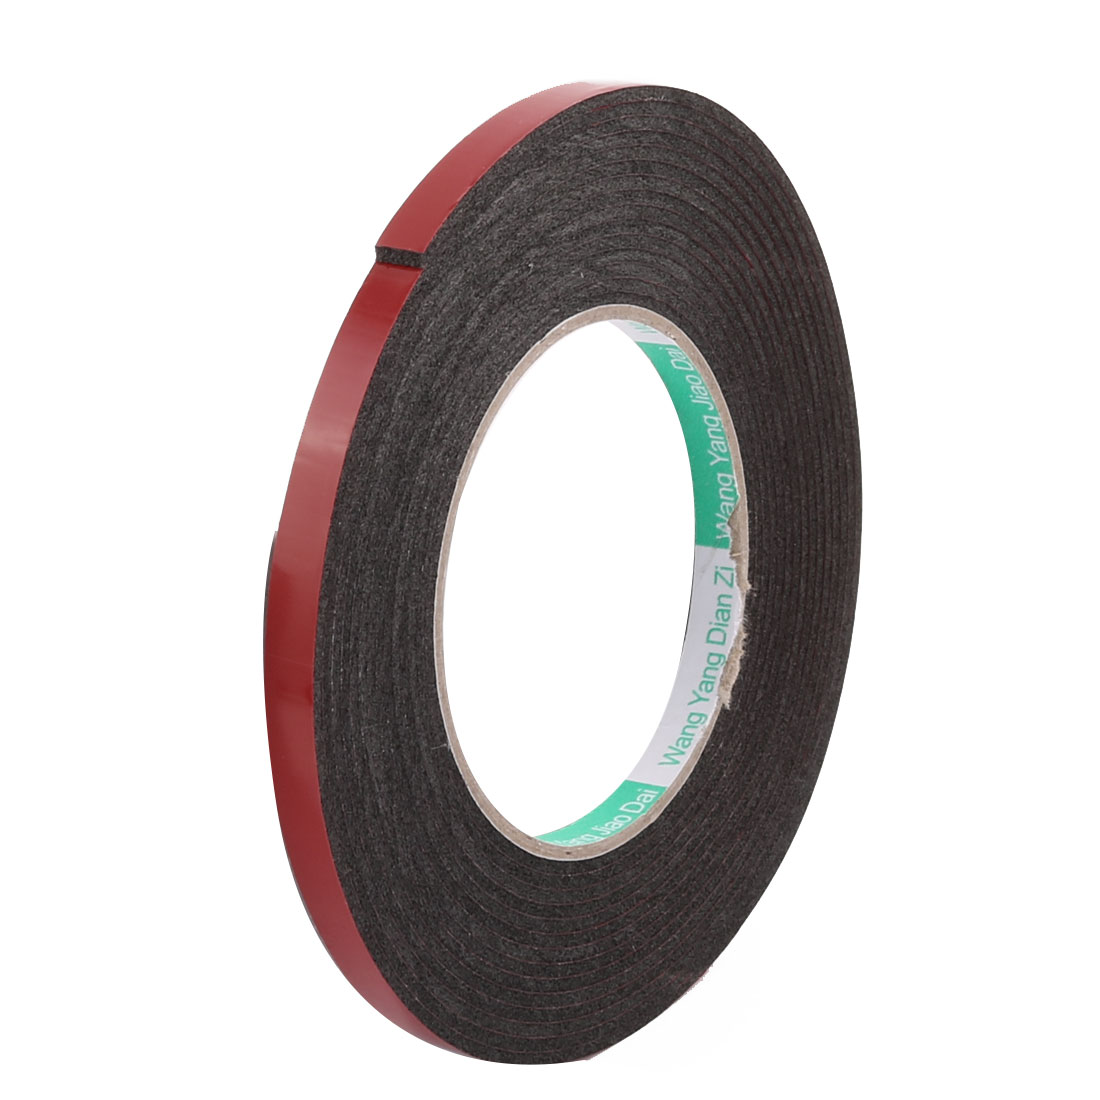 0.8CM Width 5 Meters Length 2MM Thick Dual Sided Sealing Shockproof Sponge Tape